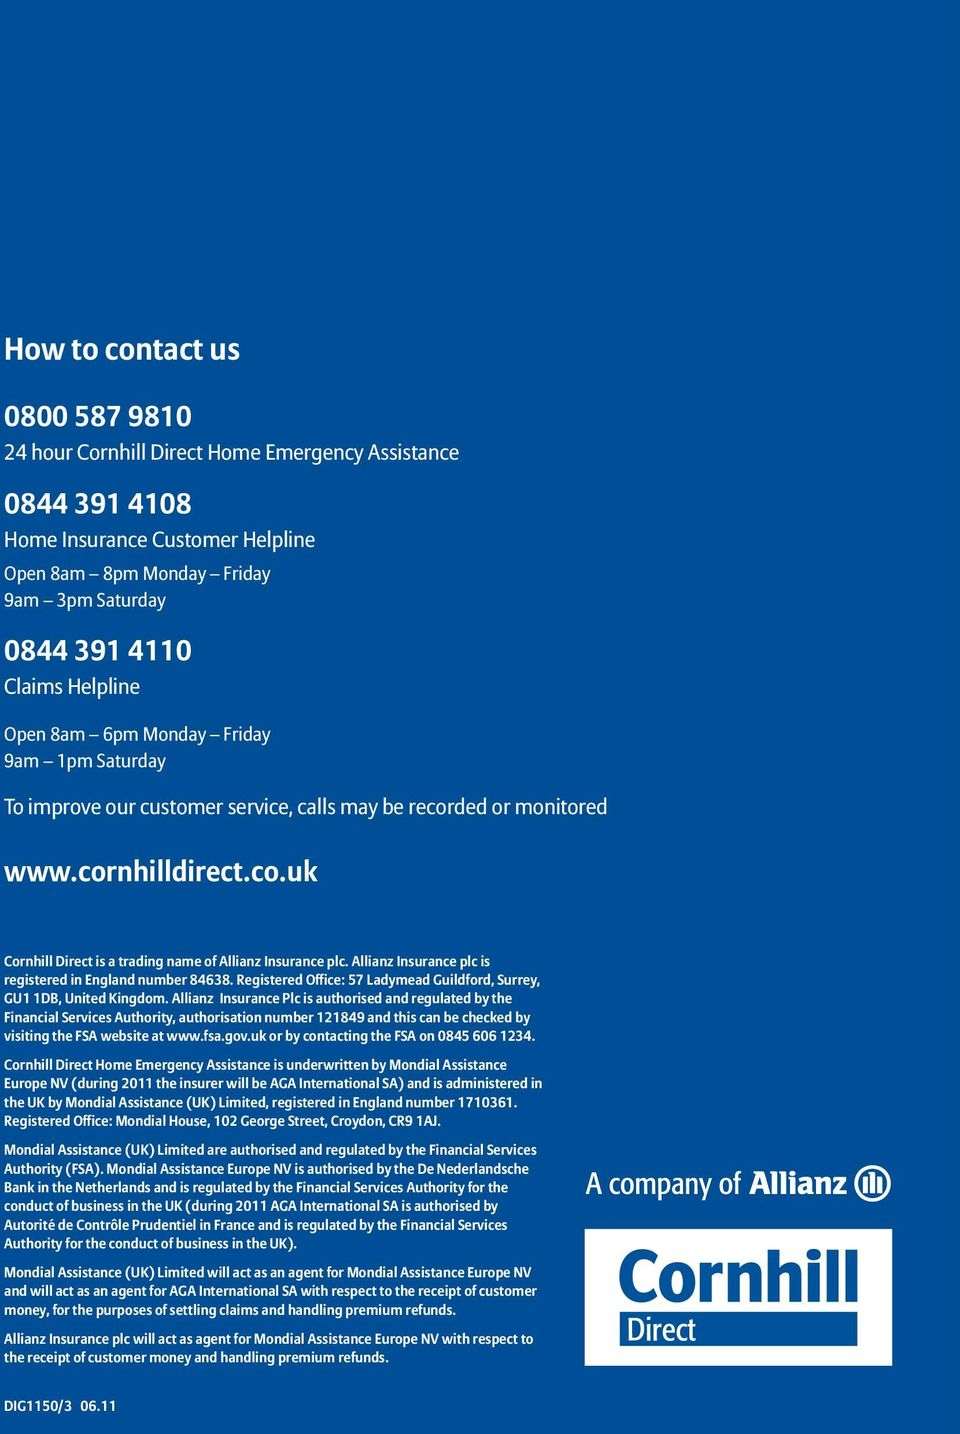 Allianz Insurance plc is registered in England number 84638. Registered Office: 57 Ladymead Guildford, Surrey, GU1 1DB, United Kingdom.